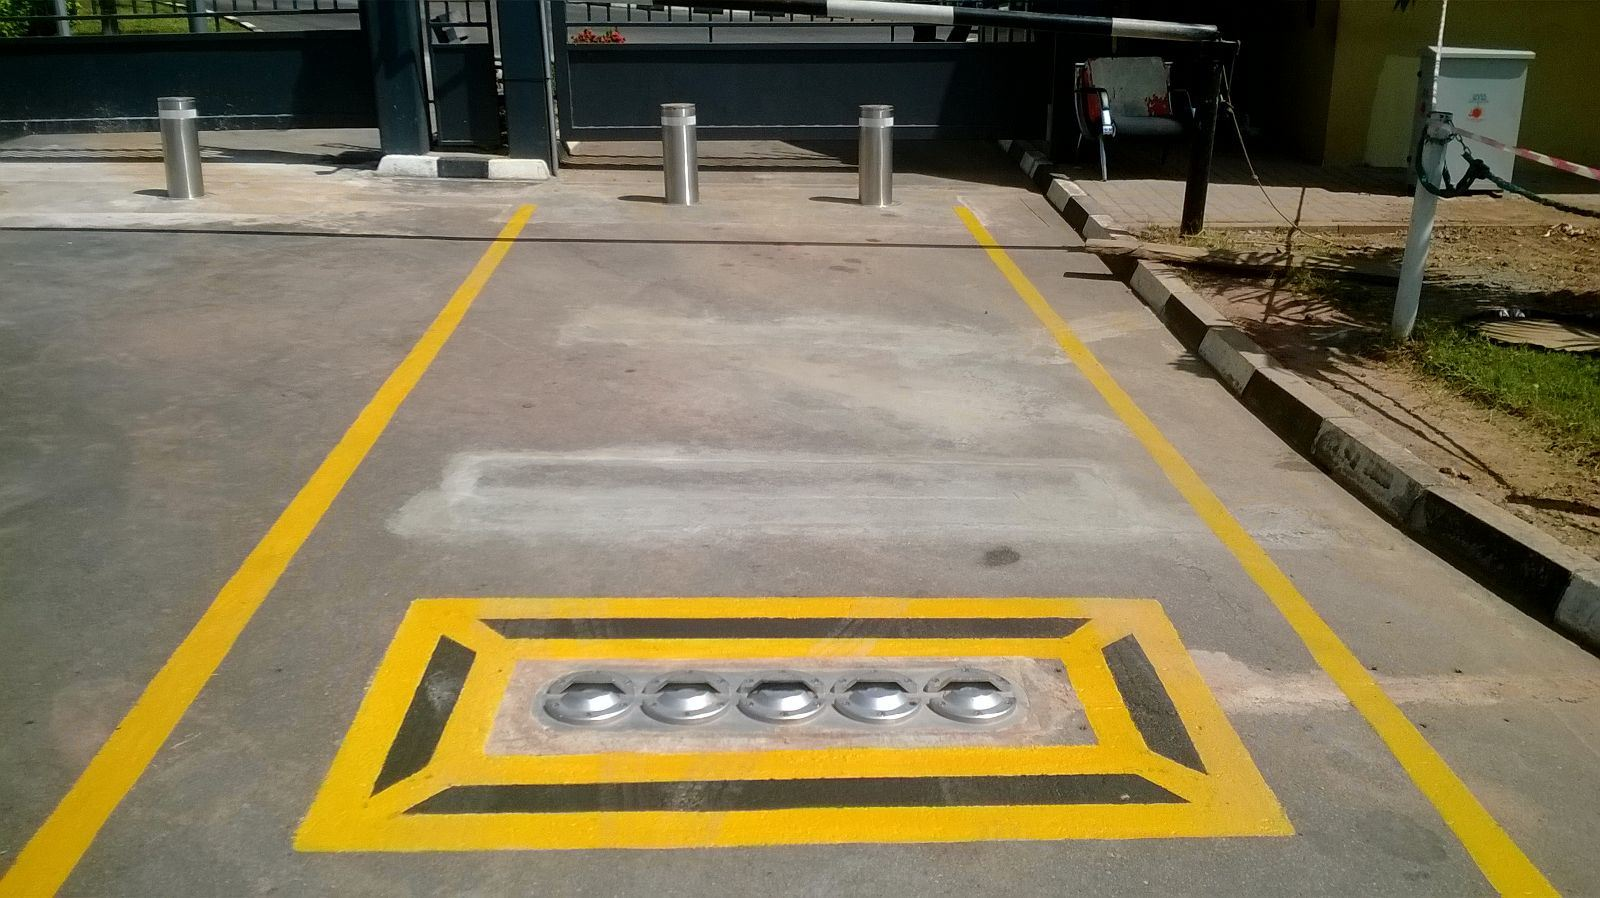 Security Use Under Vehicle Inspection System